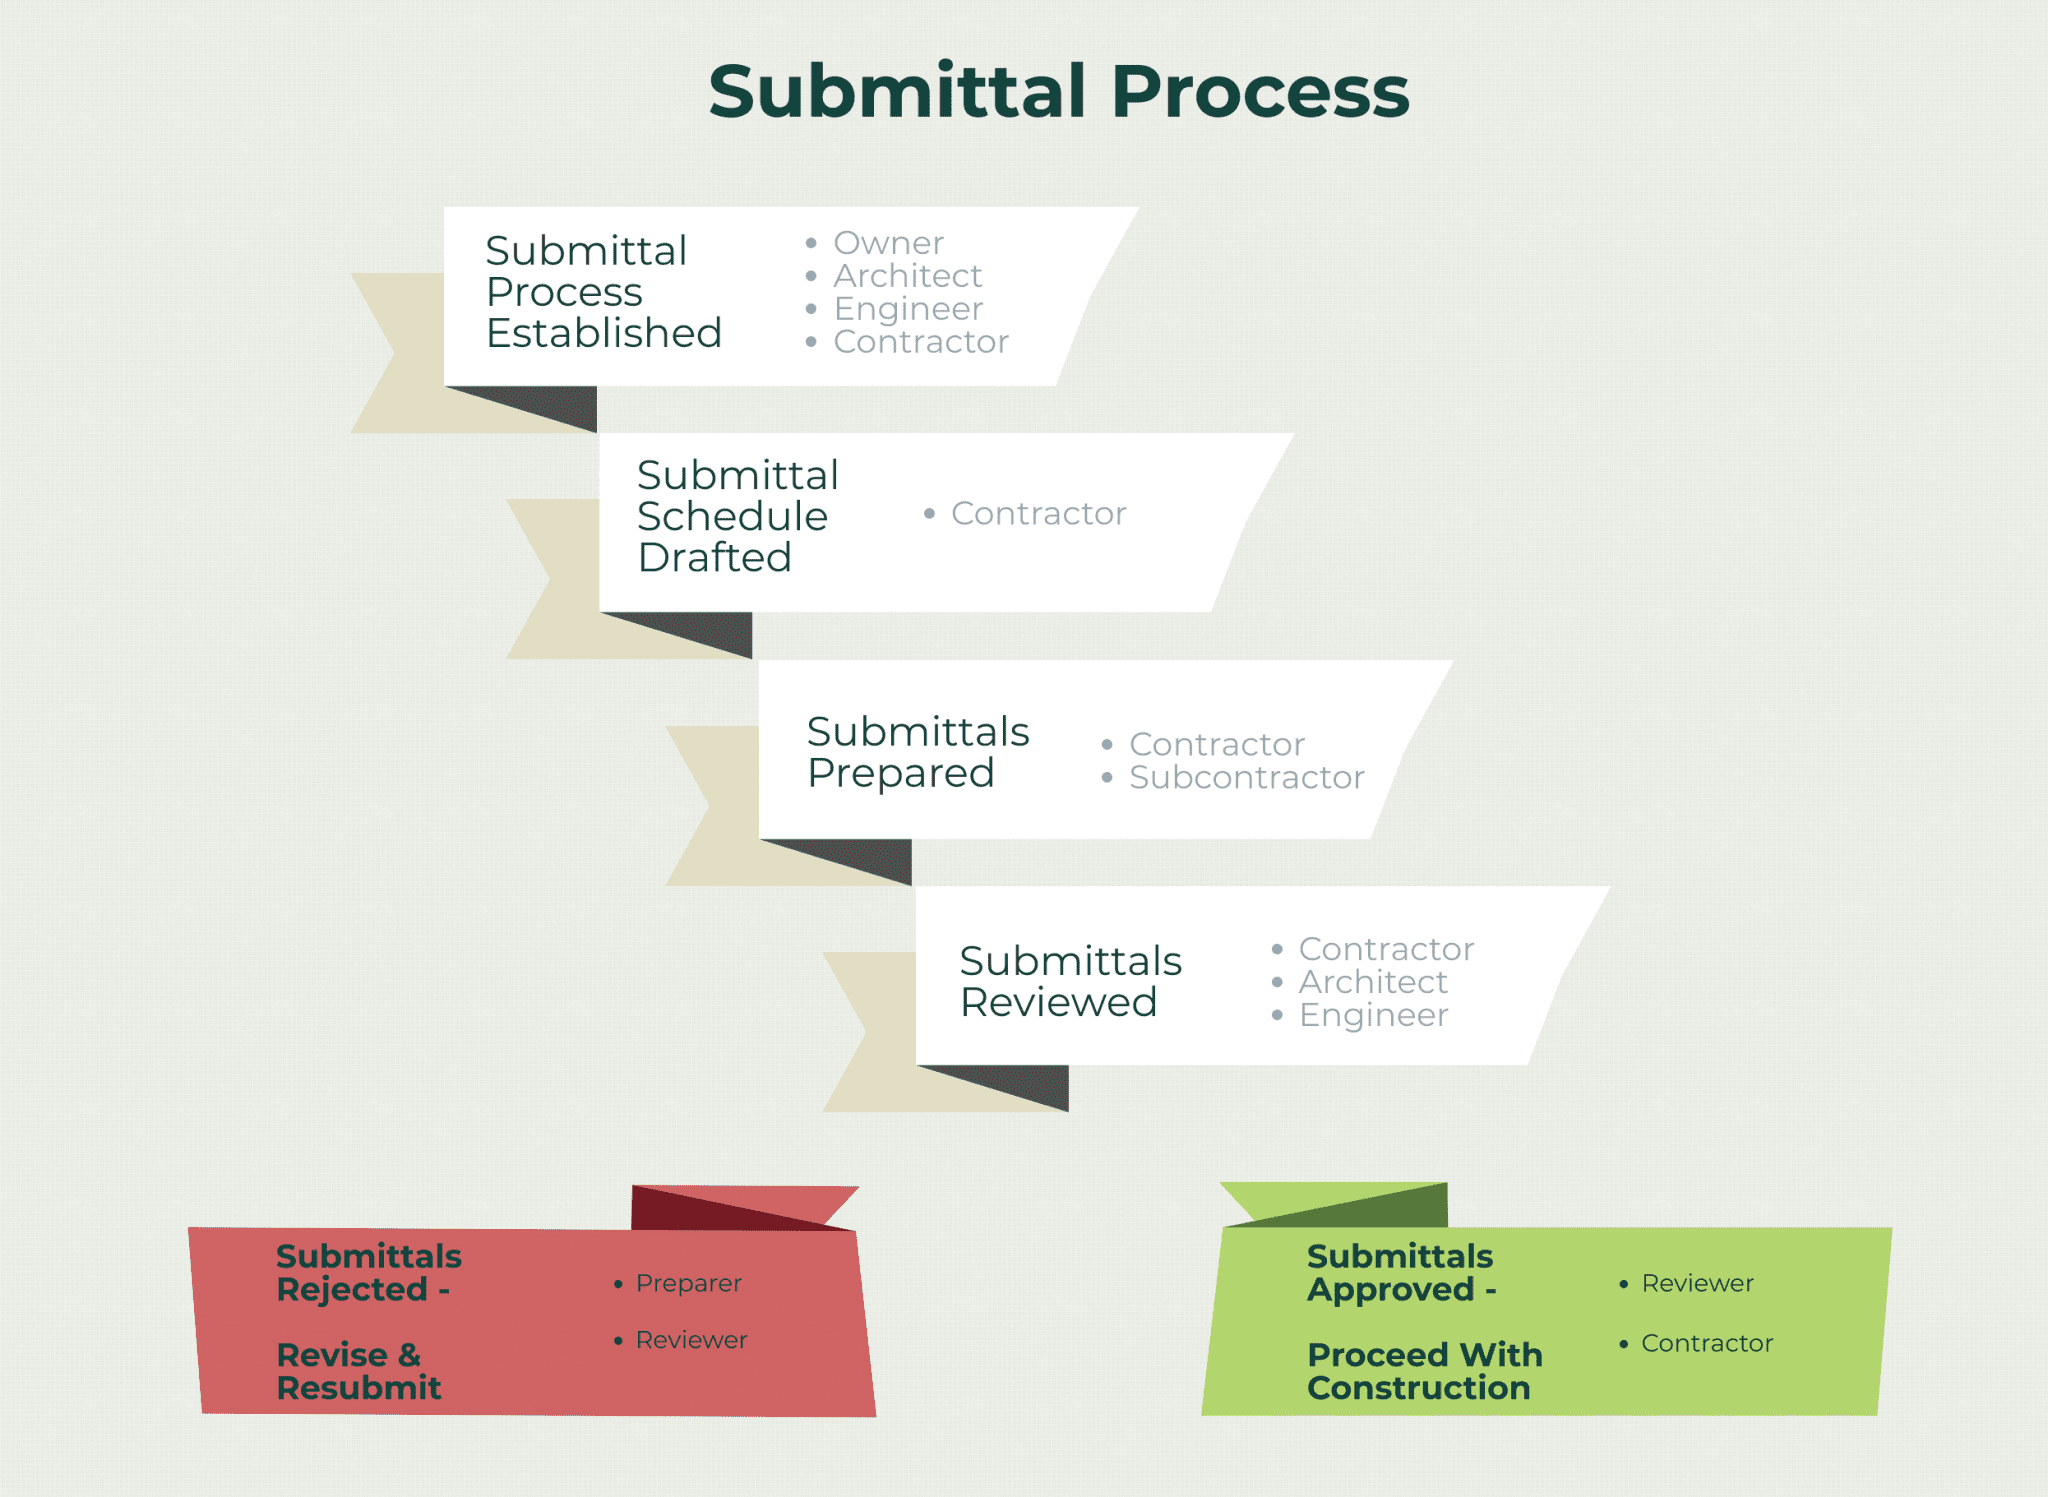 The Submittal Process for Construction Documents